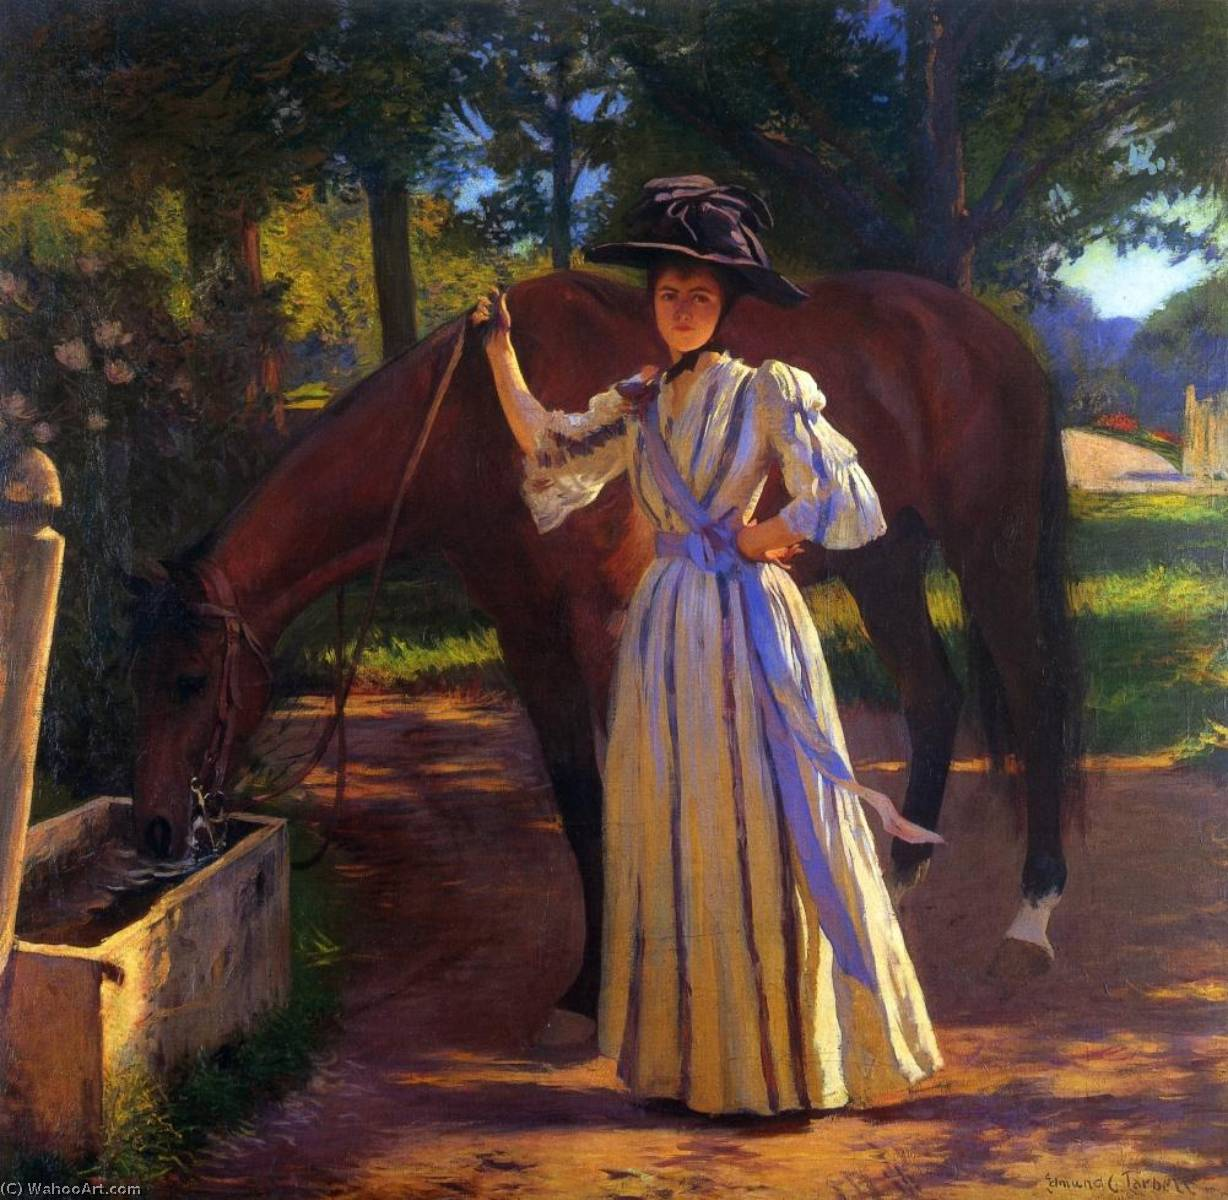 Order Art Reproduction : Girl and Horse, 1892 by Edmund Charles Tarbell (1862-1938, United States) | WahooArt.com